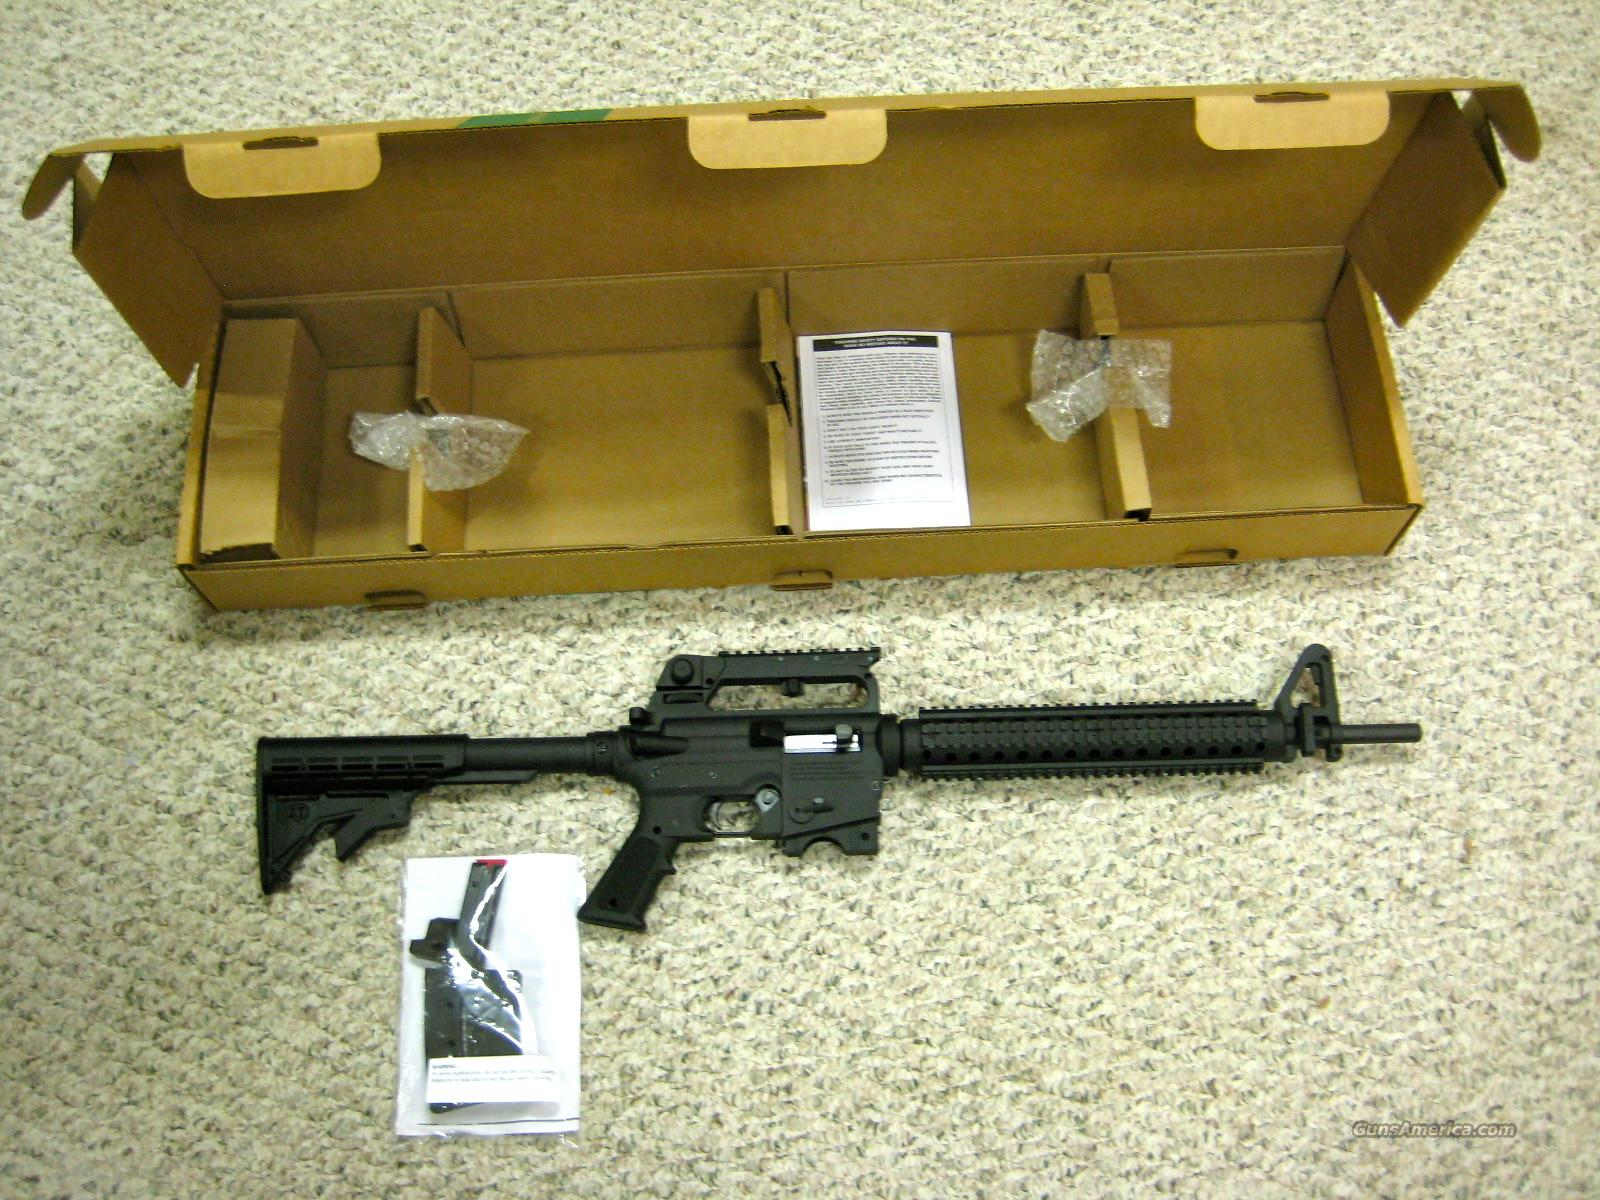 Mossberg  AR-15 Style .22 Long Rifle (Plinkster) New In Box  Guns > Rifles > Mossberg Rifles > Plinkster Series